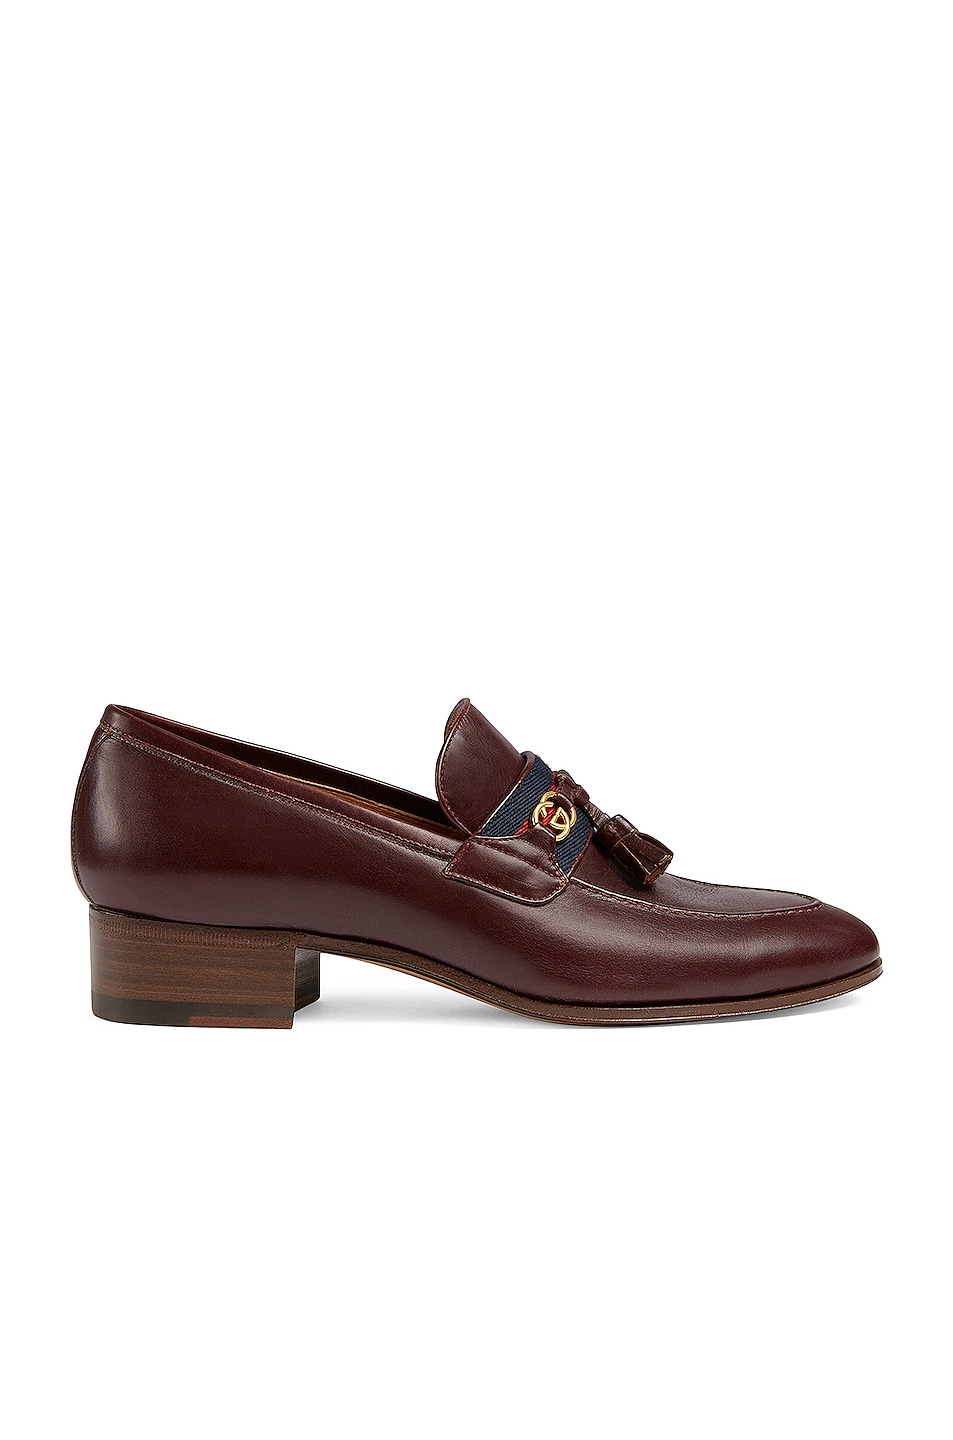 Image 1 of Gucci Paride Leather Moccasins in Indian Ebony